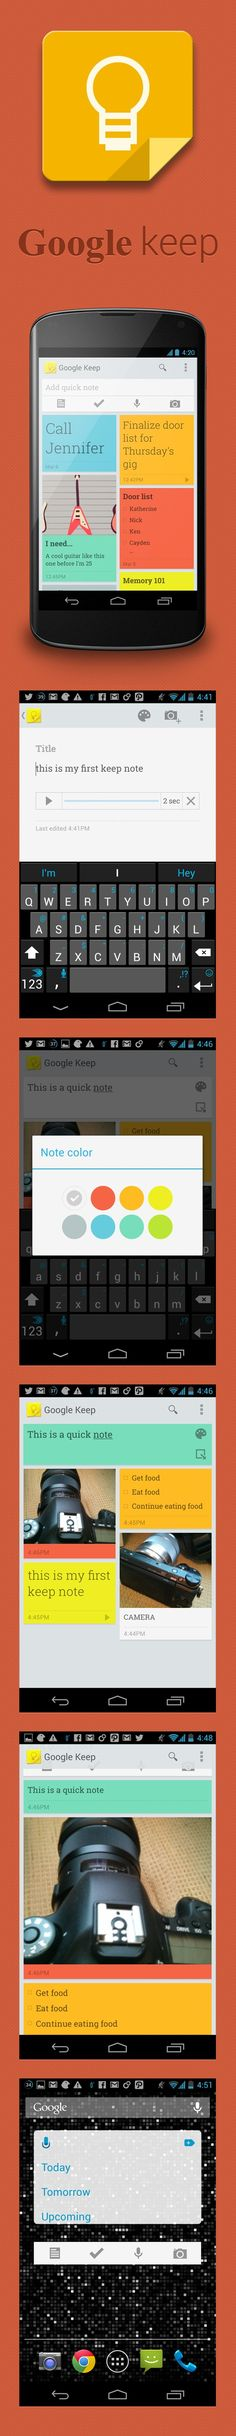 Google Keep - With Google Keep, you can create notes, checklists, photos and voice memos